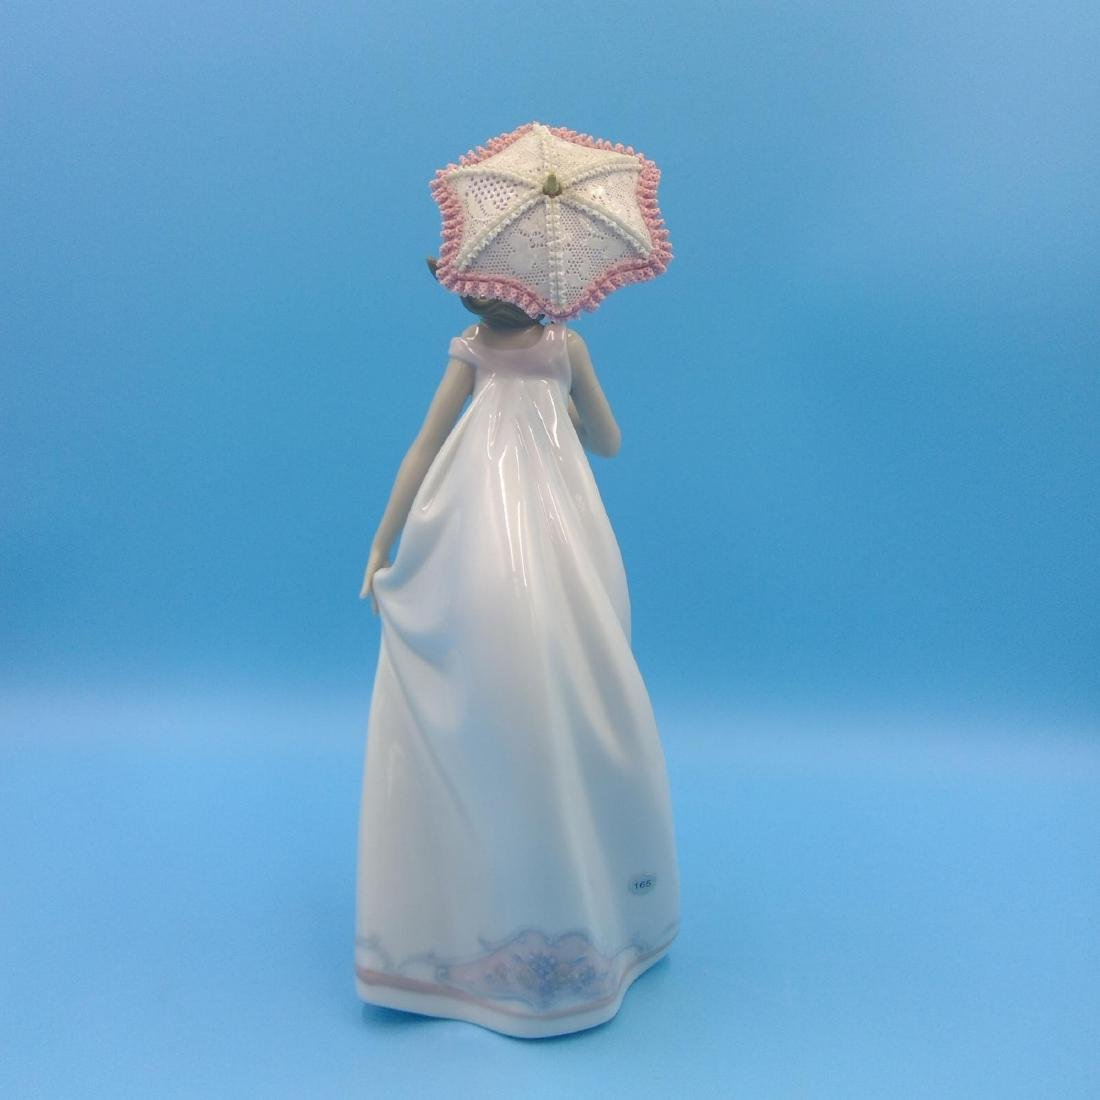 LLADRO PORCELAIN FIGURINE GIRL WITH UMBRELLA - 3